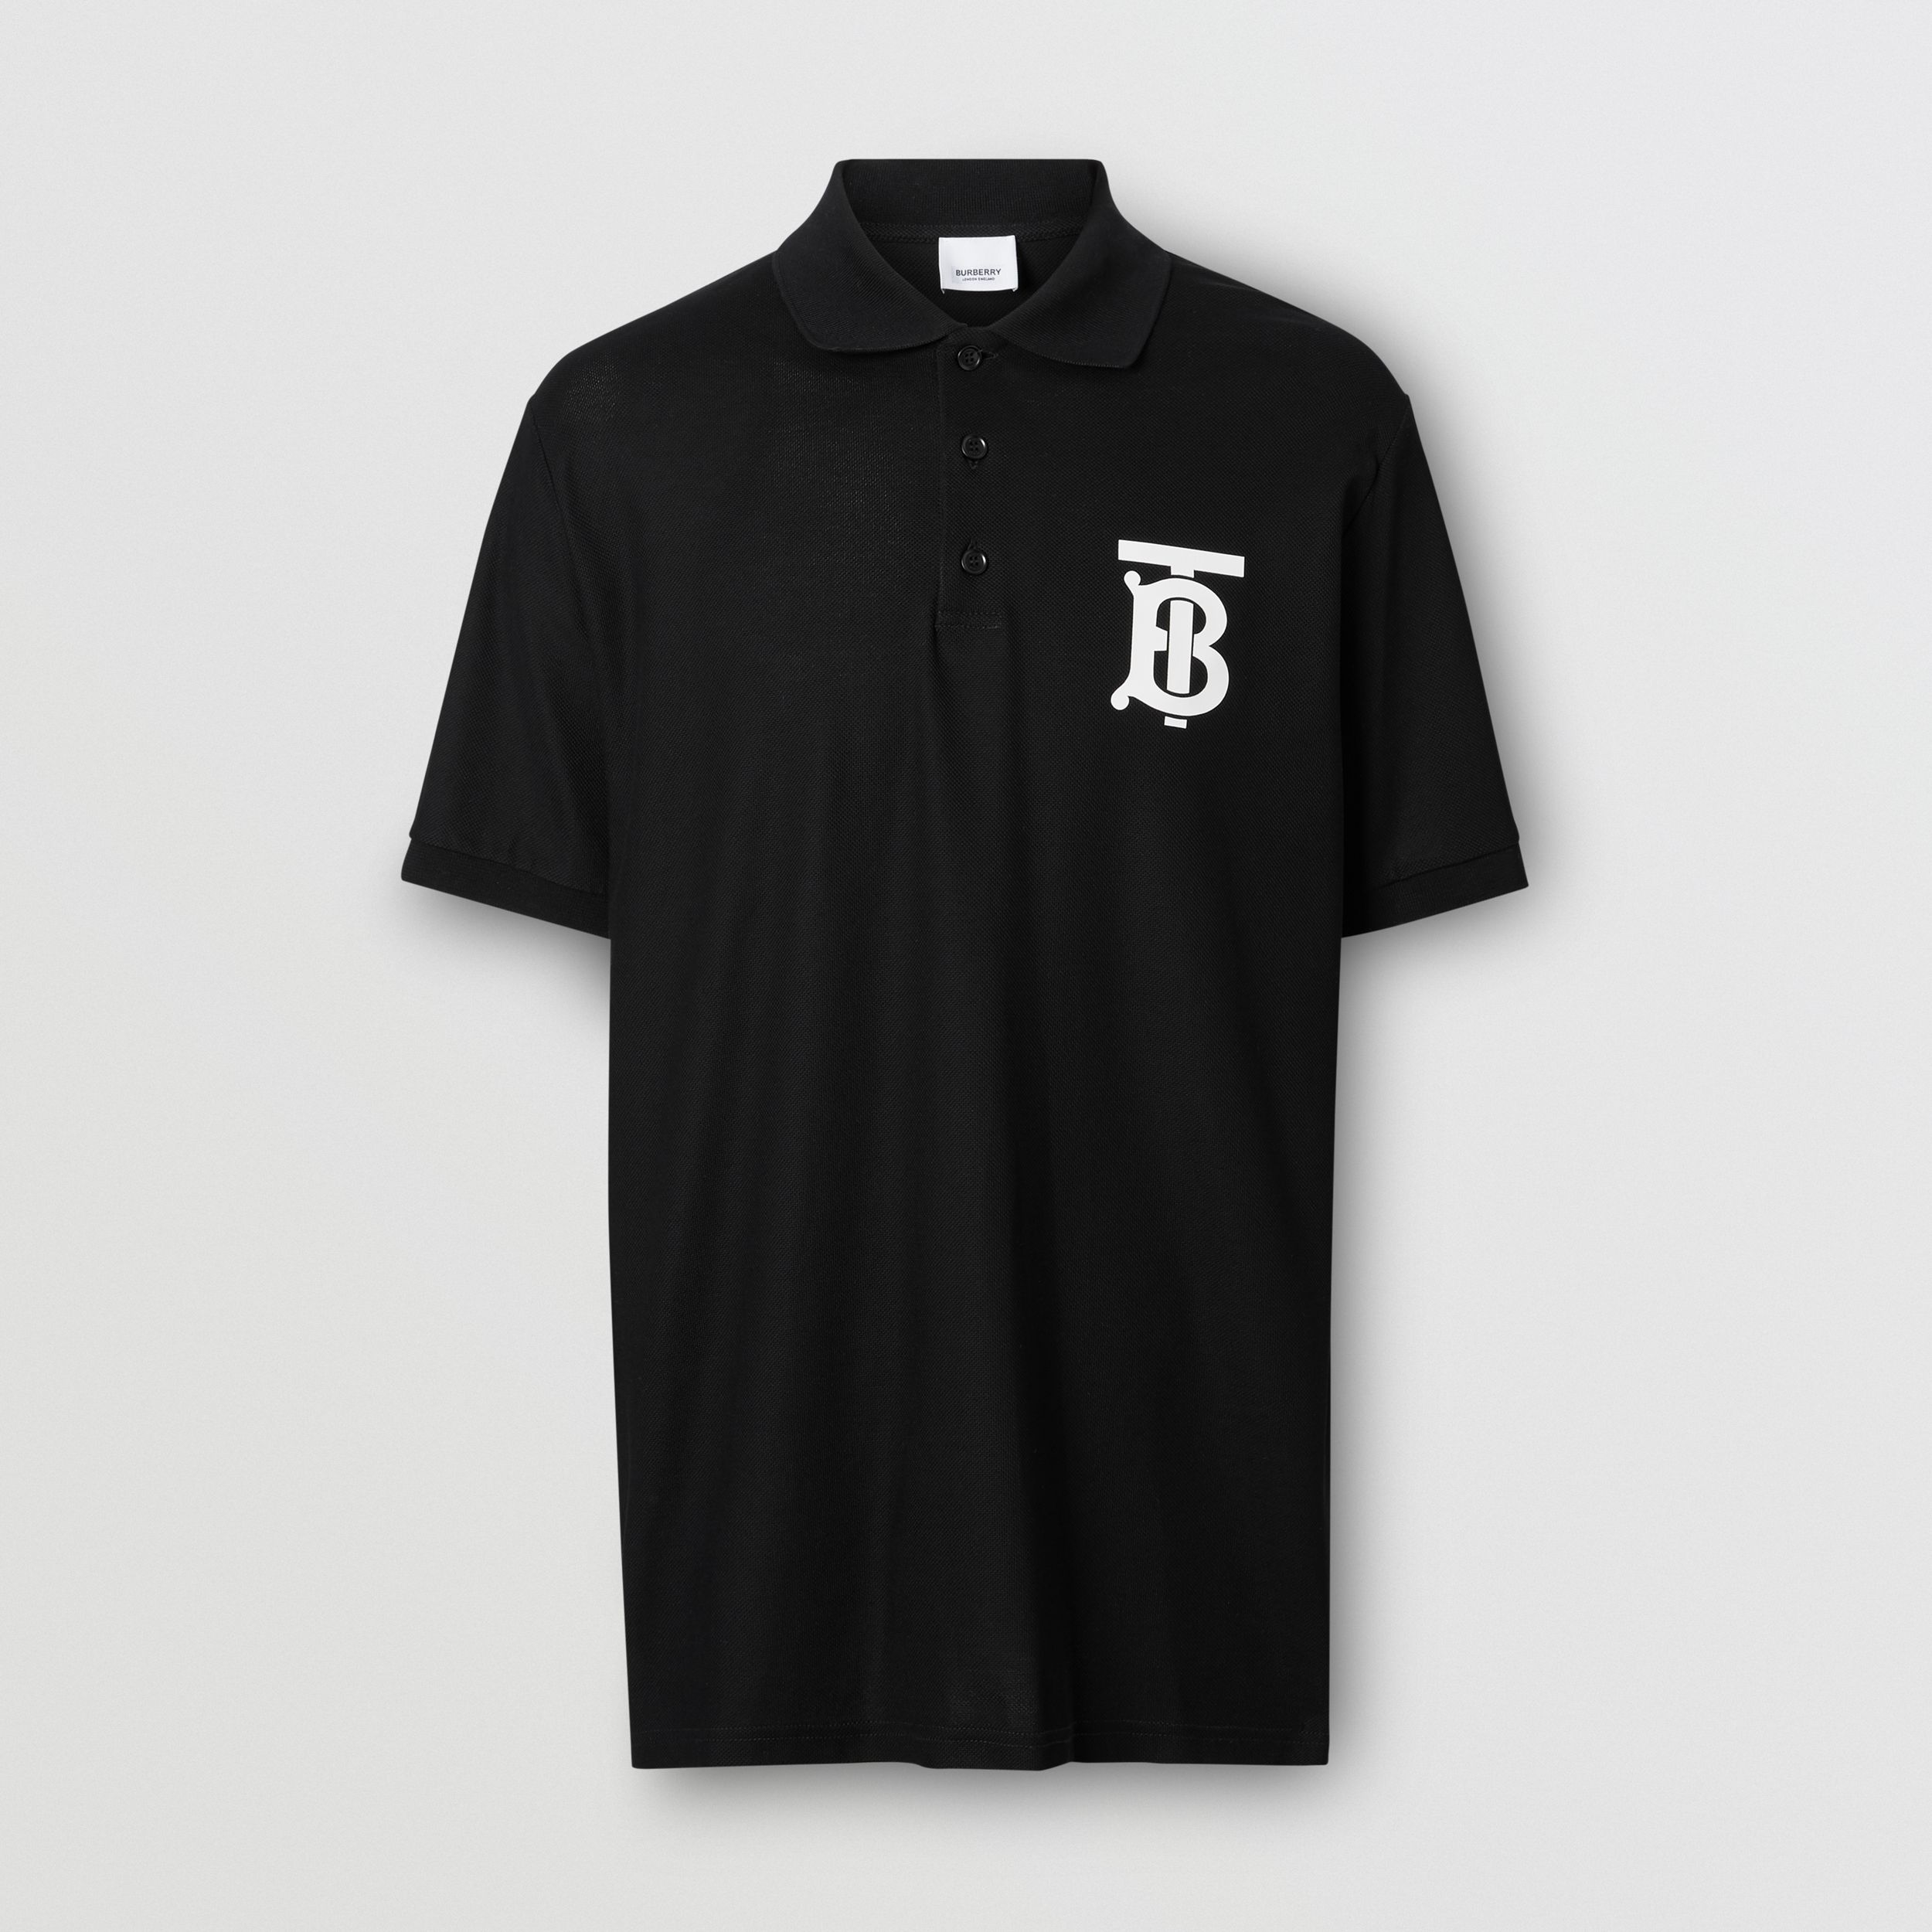 Monogram Motif Cotton Piqué Oversized Polo Shirt in Black - Men | Burberry - 4